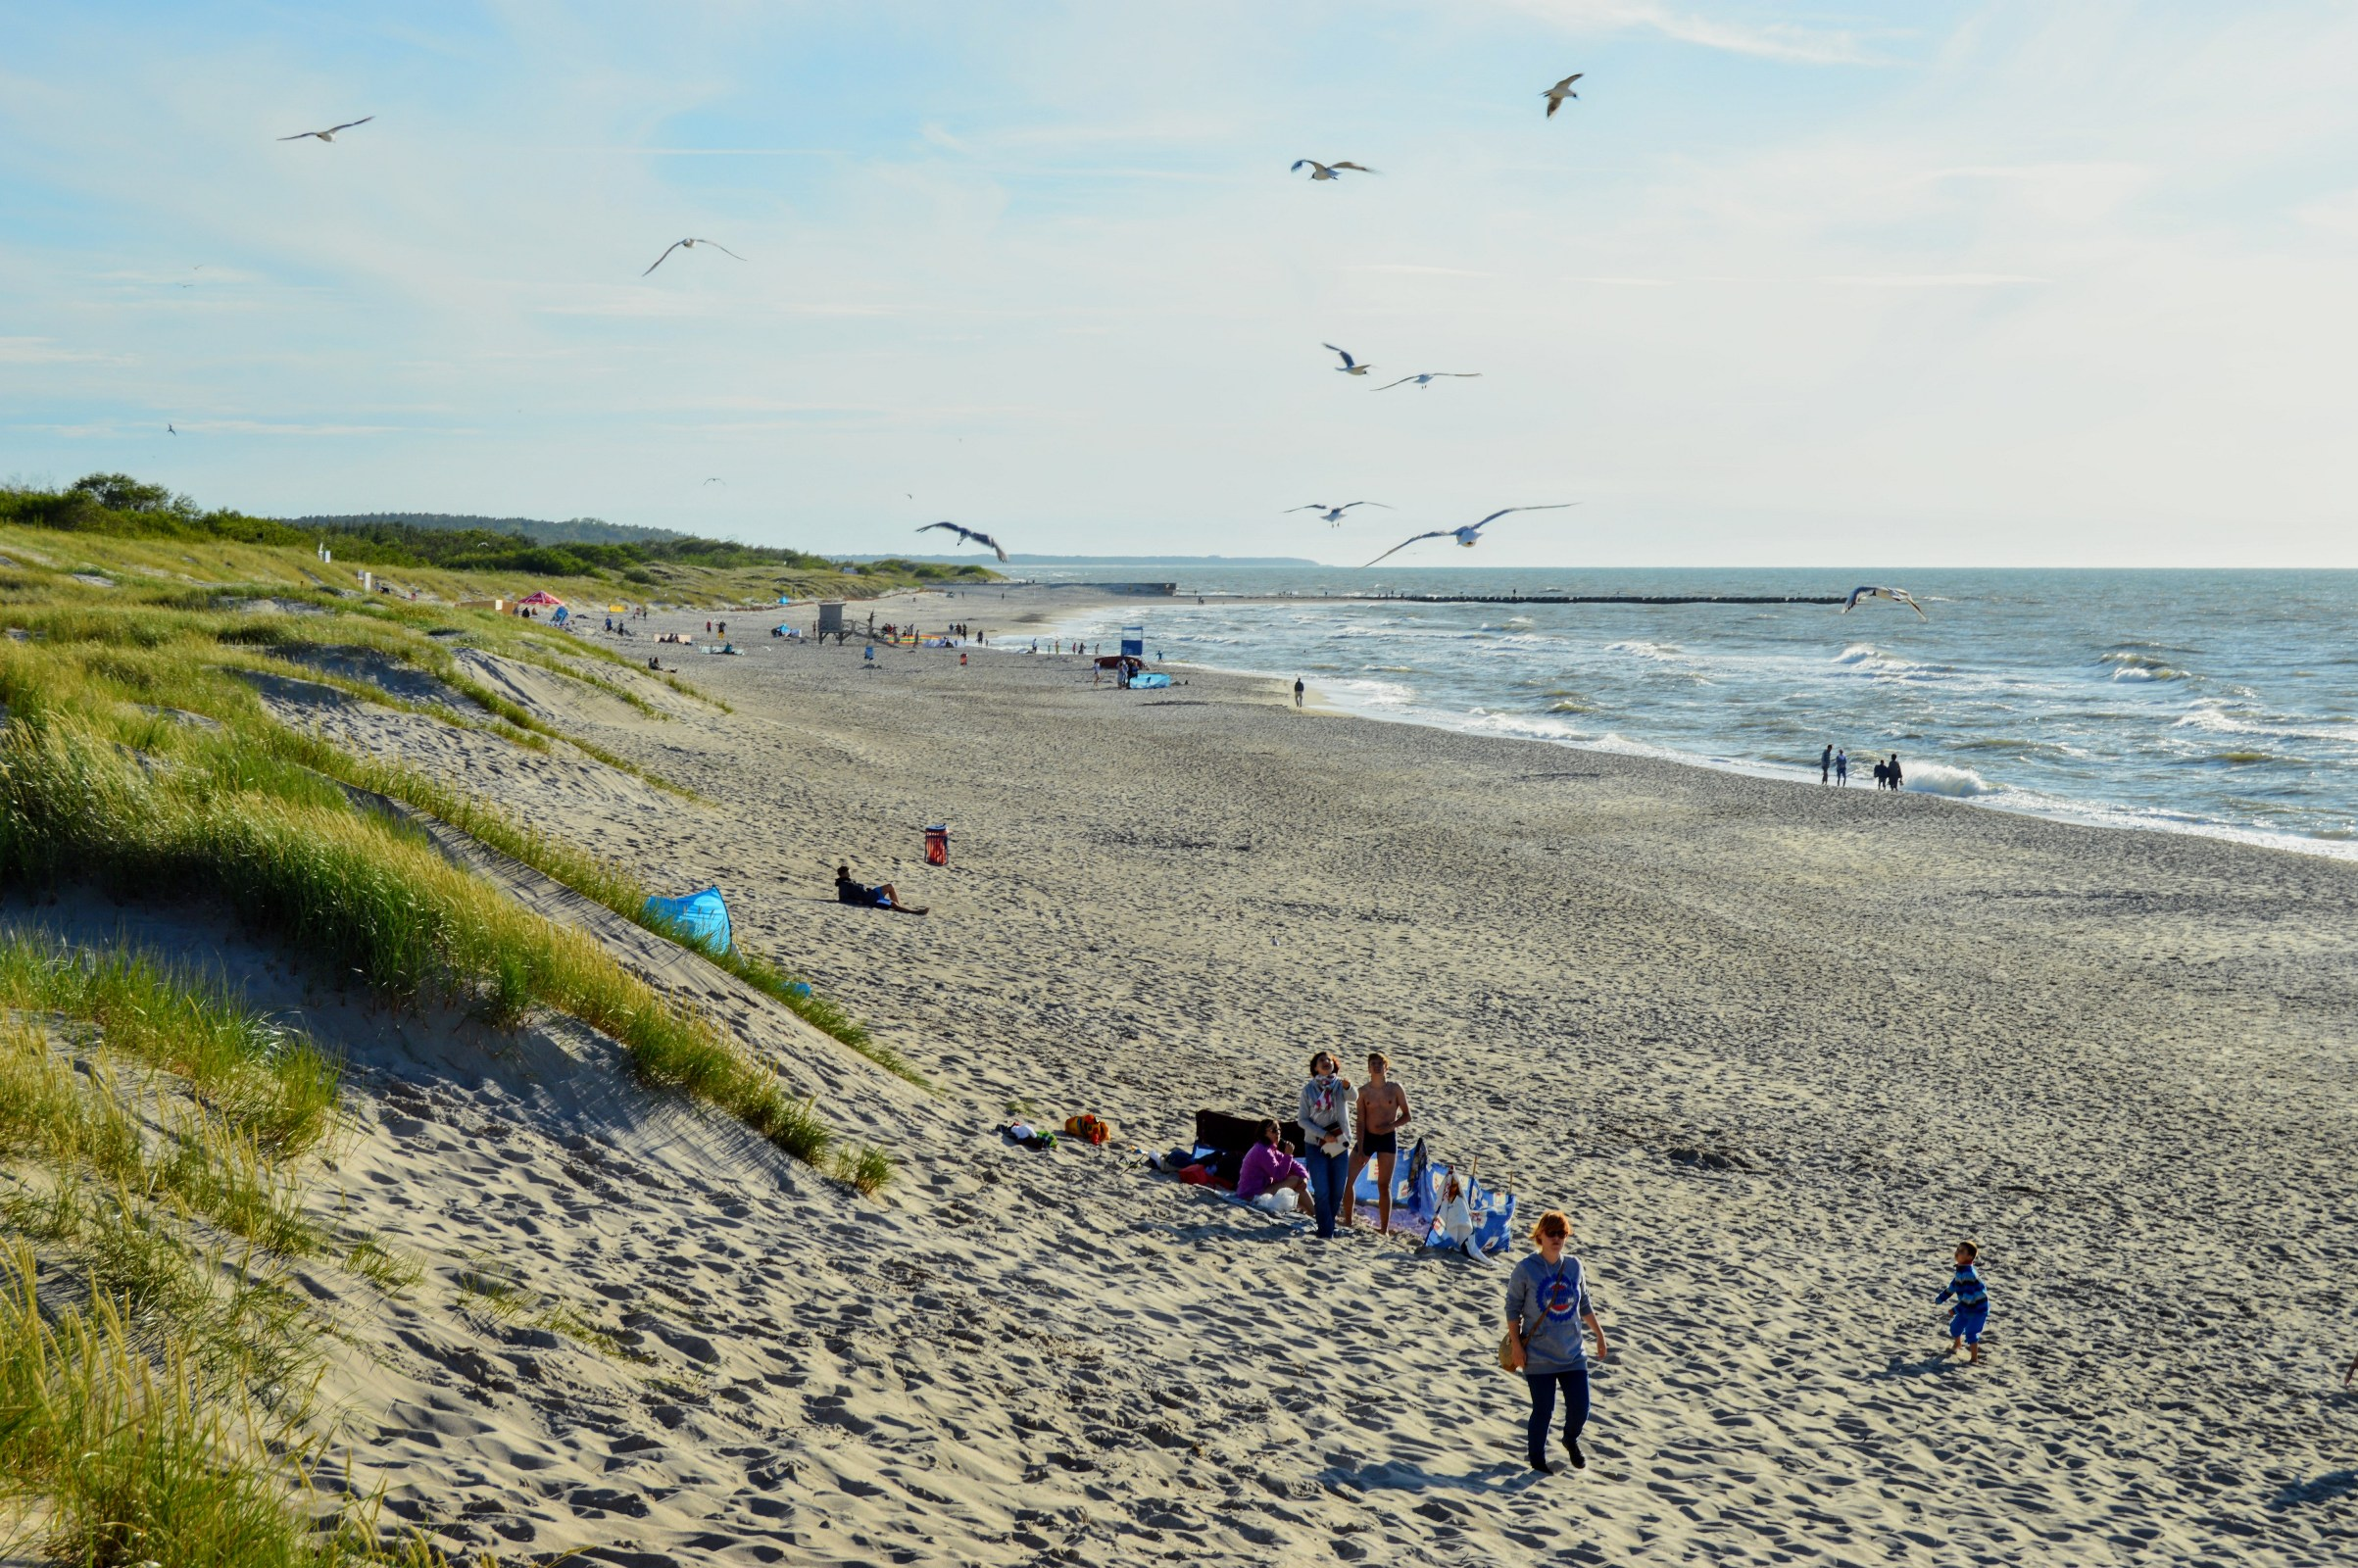 People relax on the beach near the sand dunes photo